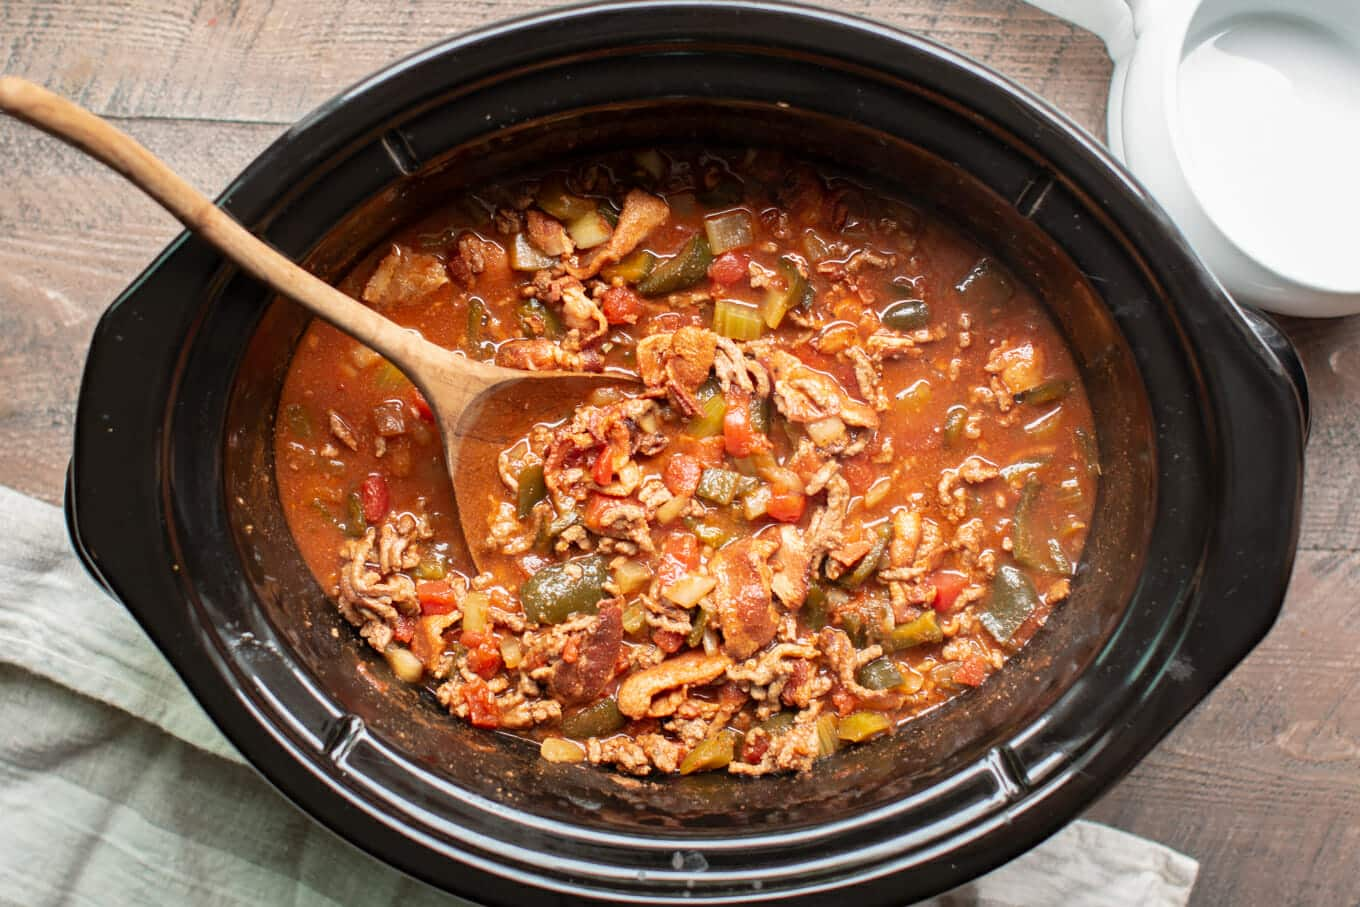 low carb chili done cooking in a slow cooker